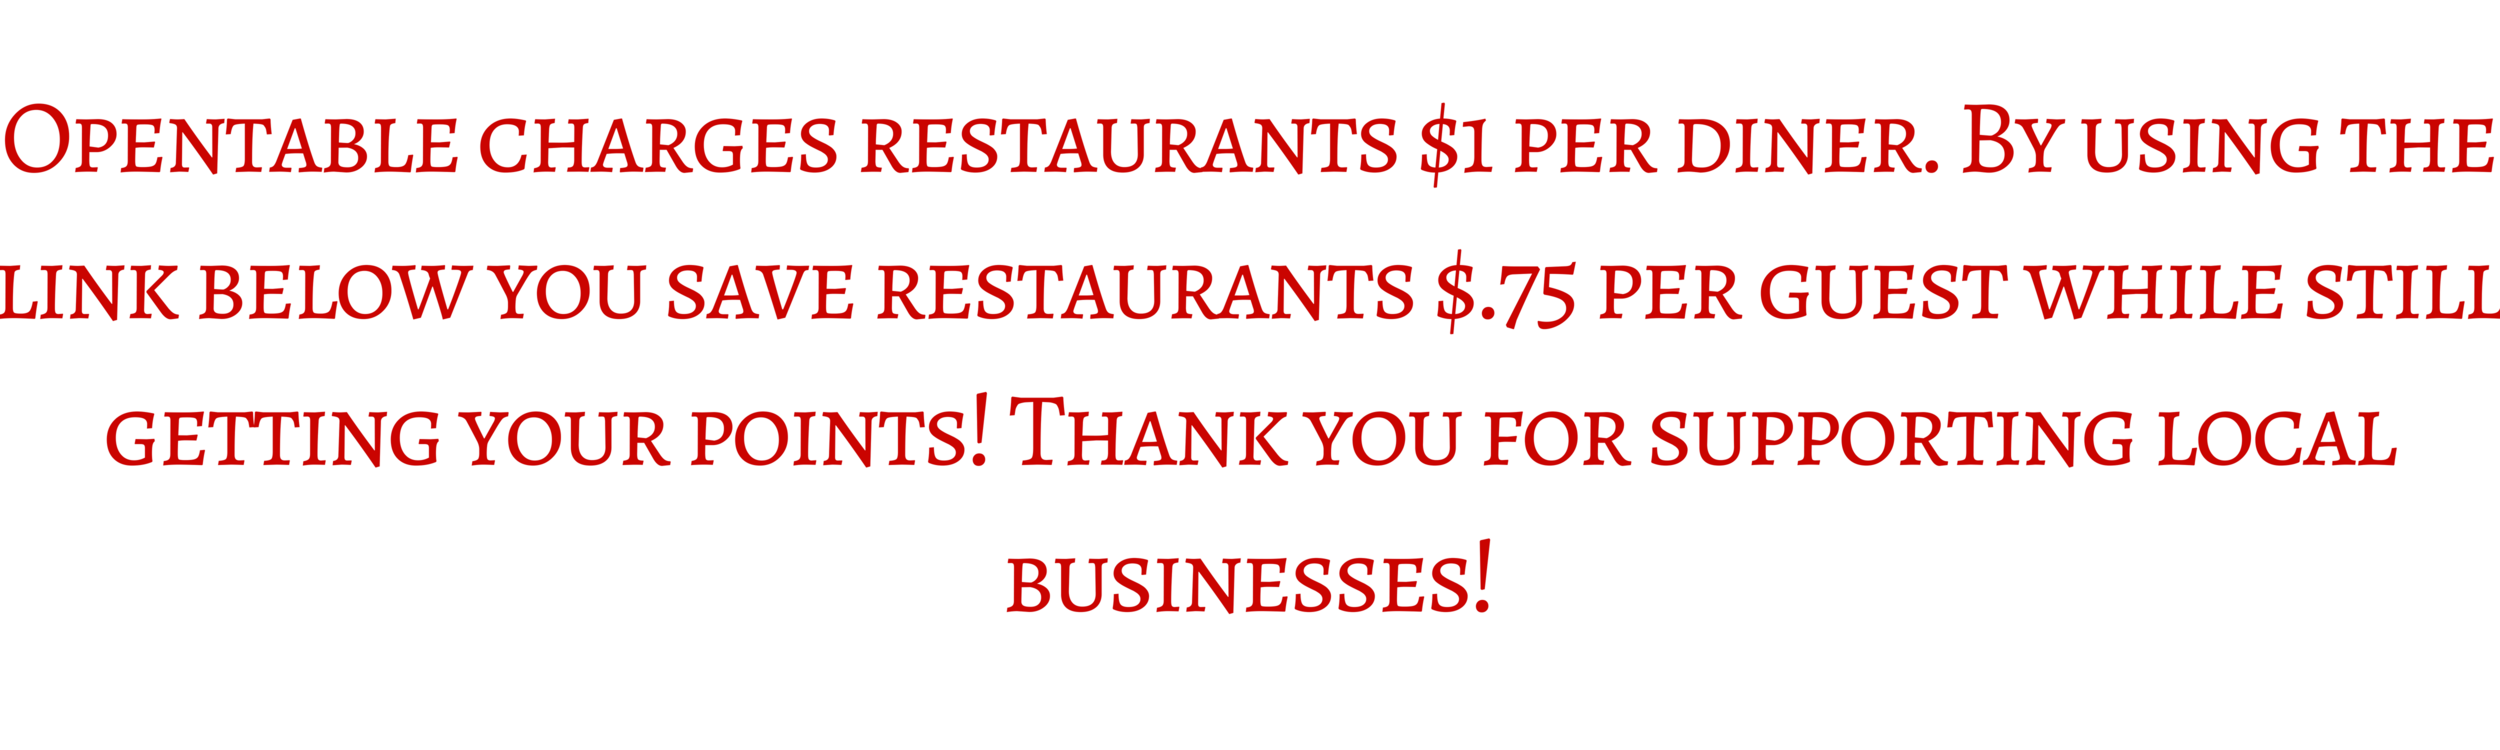 Opentable charges restaurants $1 per diner. By using the link below you save restaurants $.75 per guest%2.png